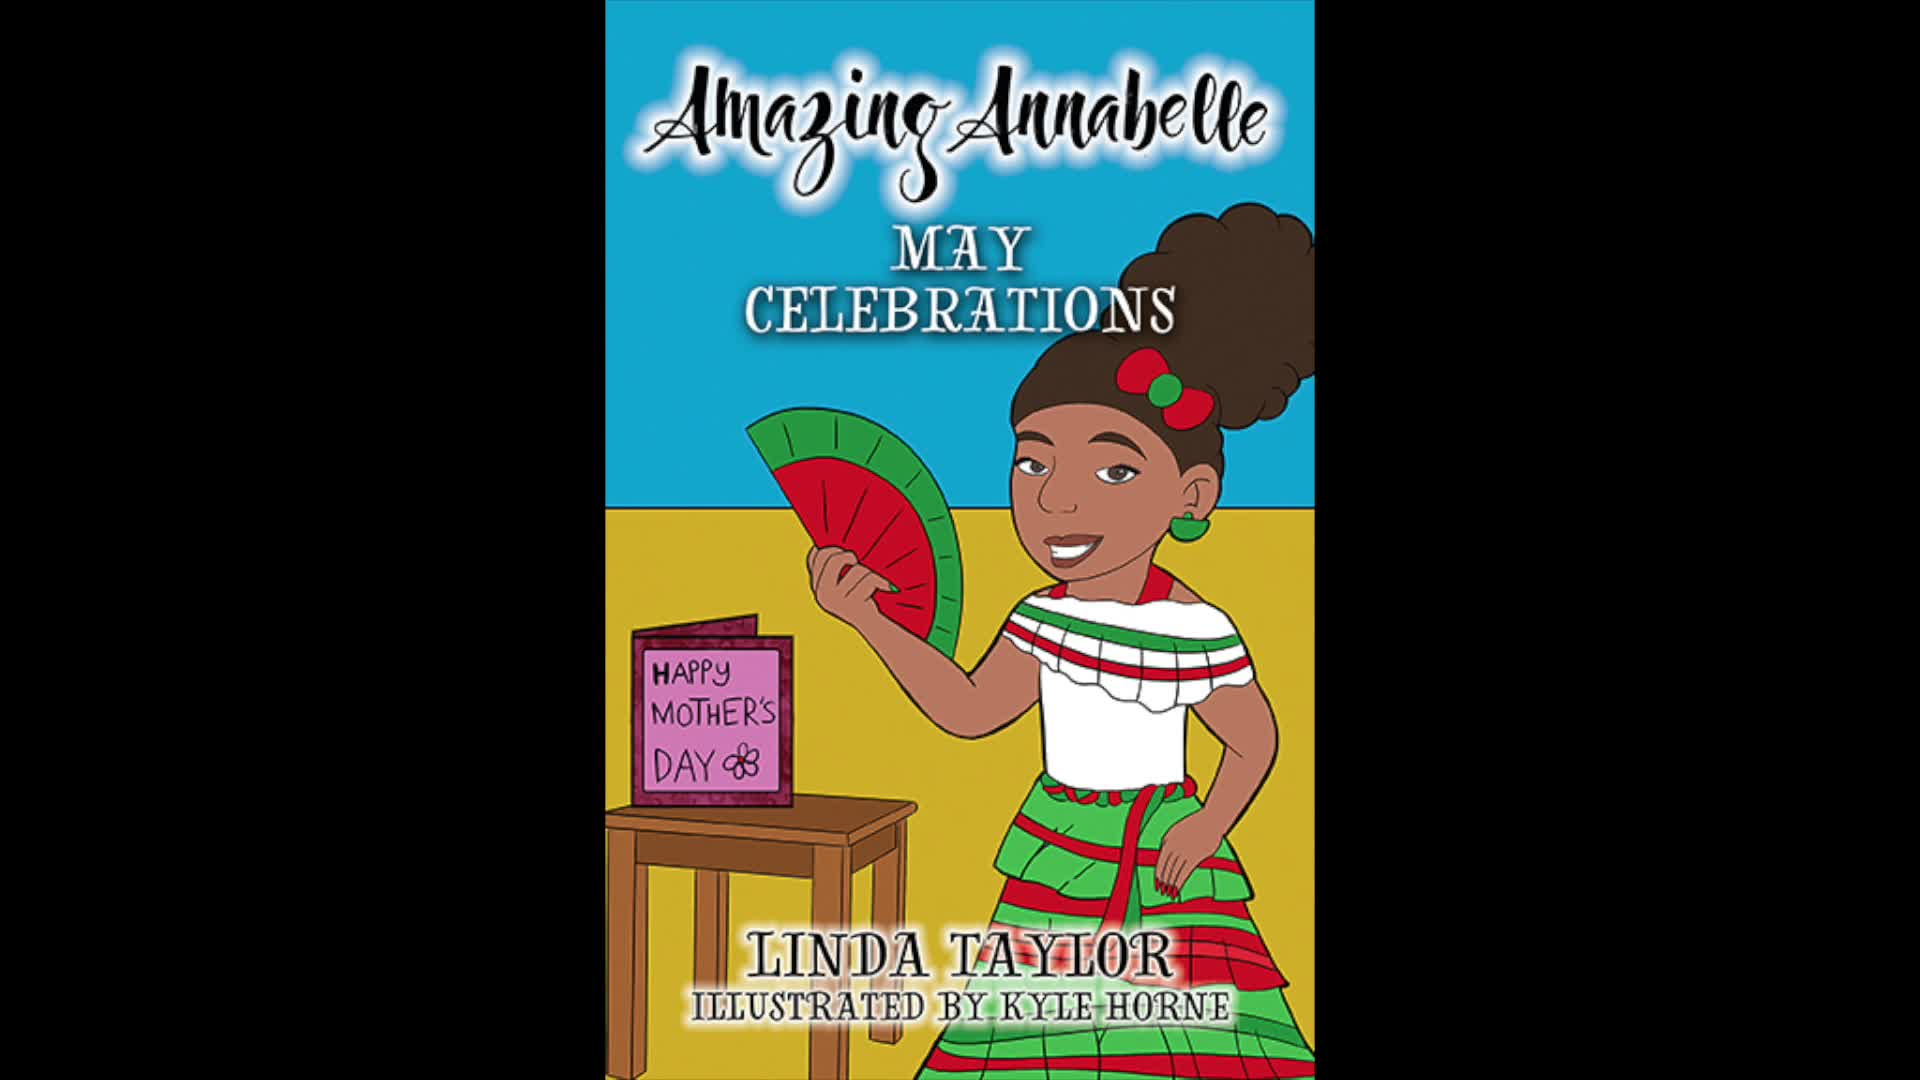 Amazing Annabelle May Celebrations Chapter 11